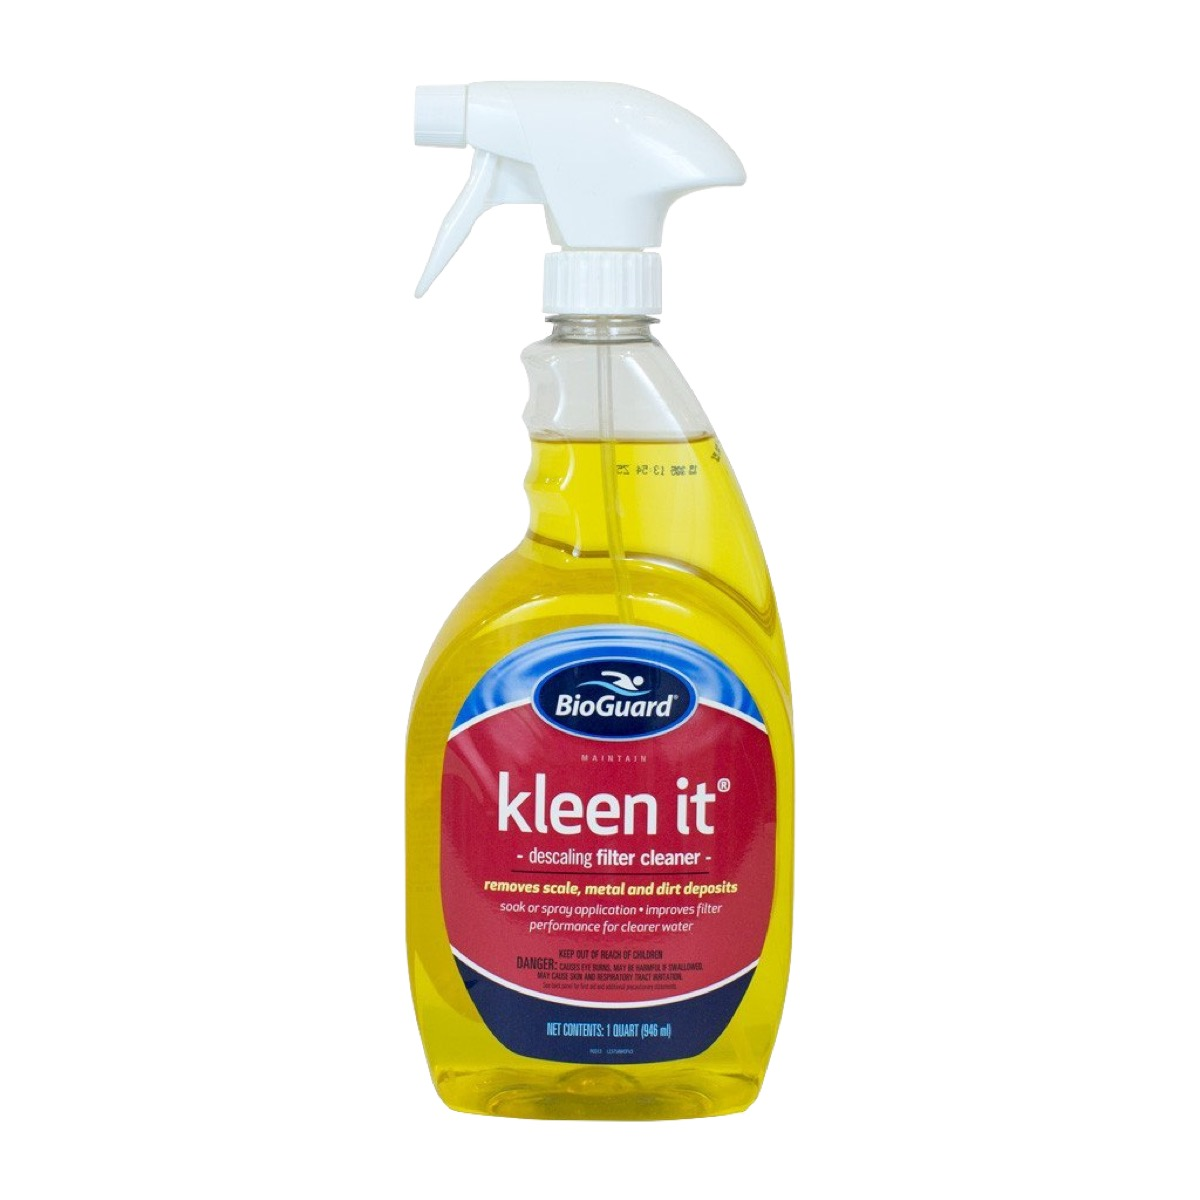 bioguard kleen it front view